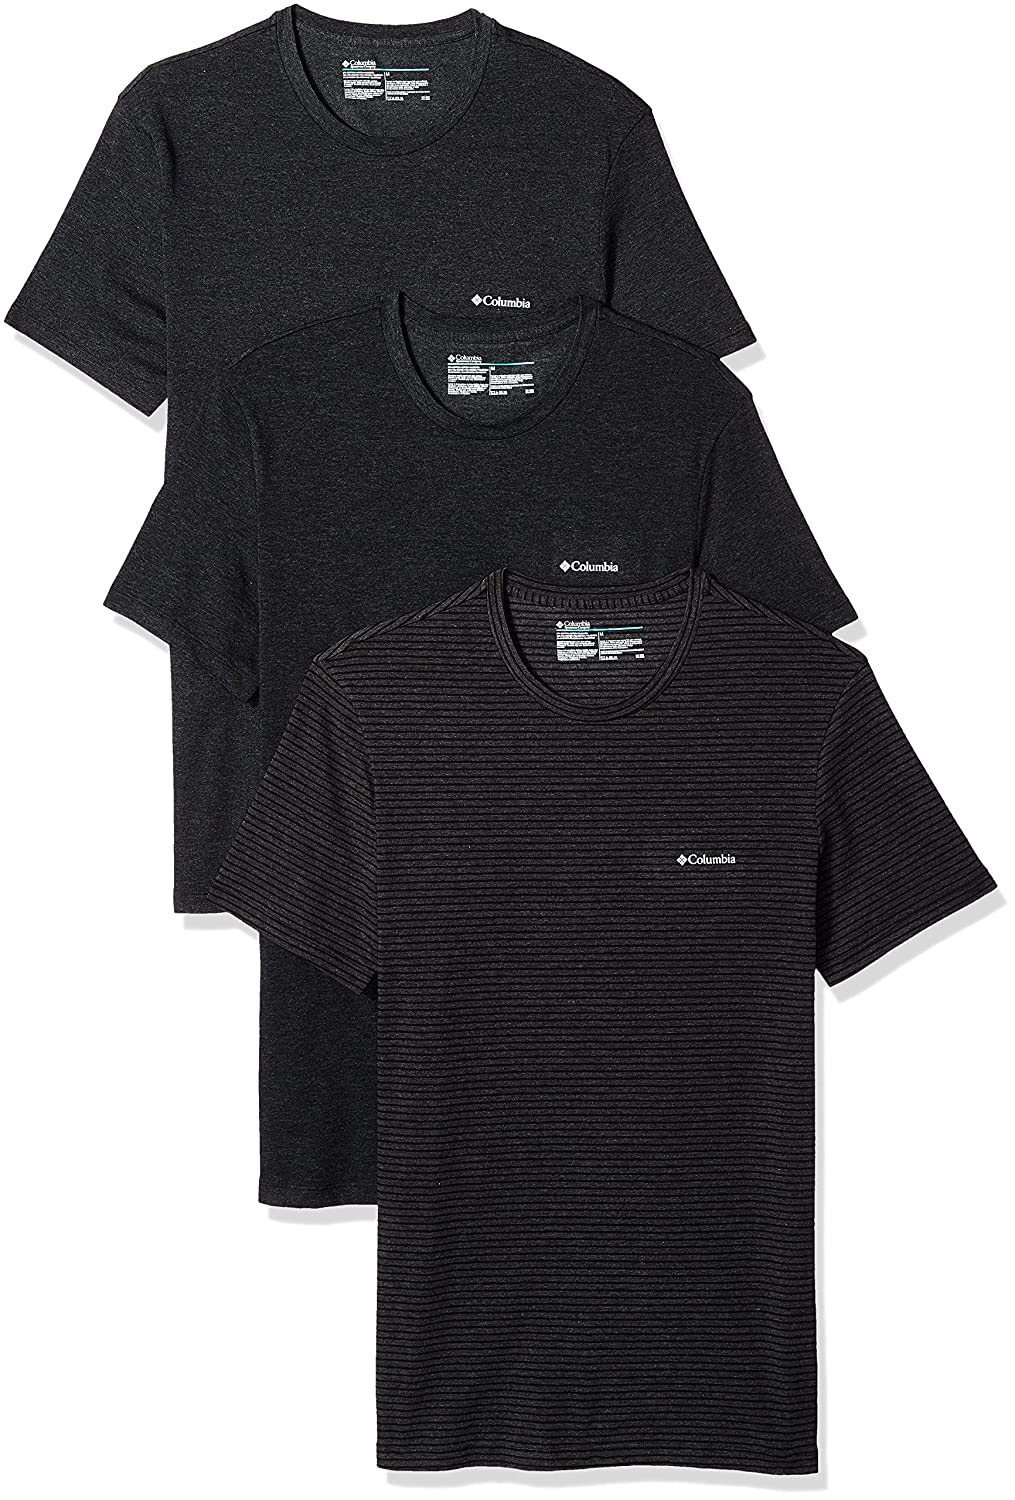 Columbia Mens Performance CTTN Stretch 3 Pk Crew Neck Tee